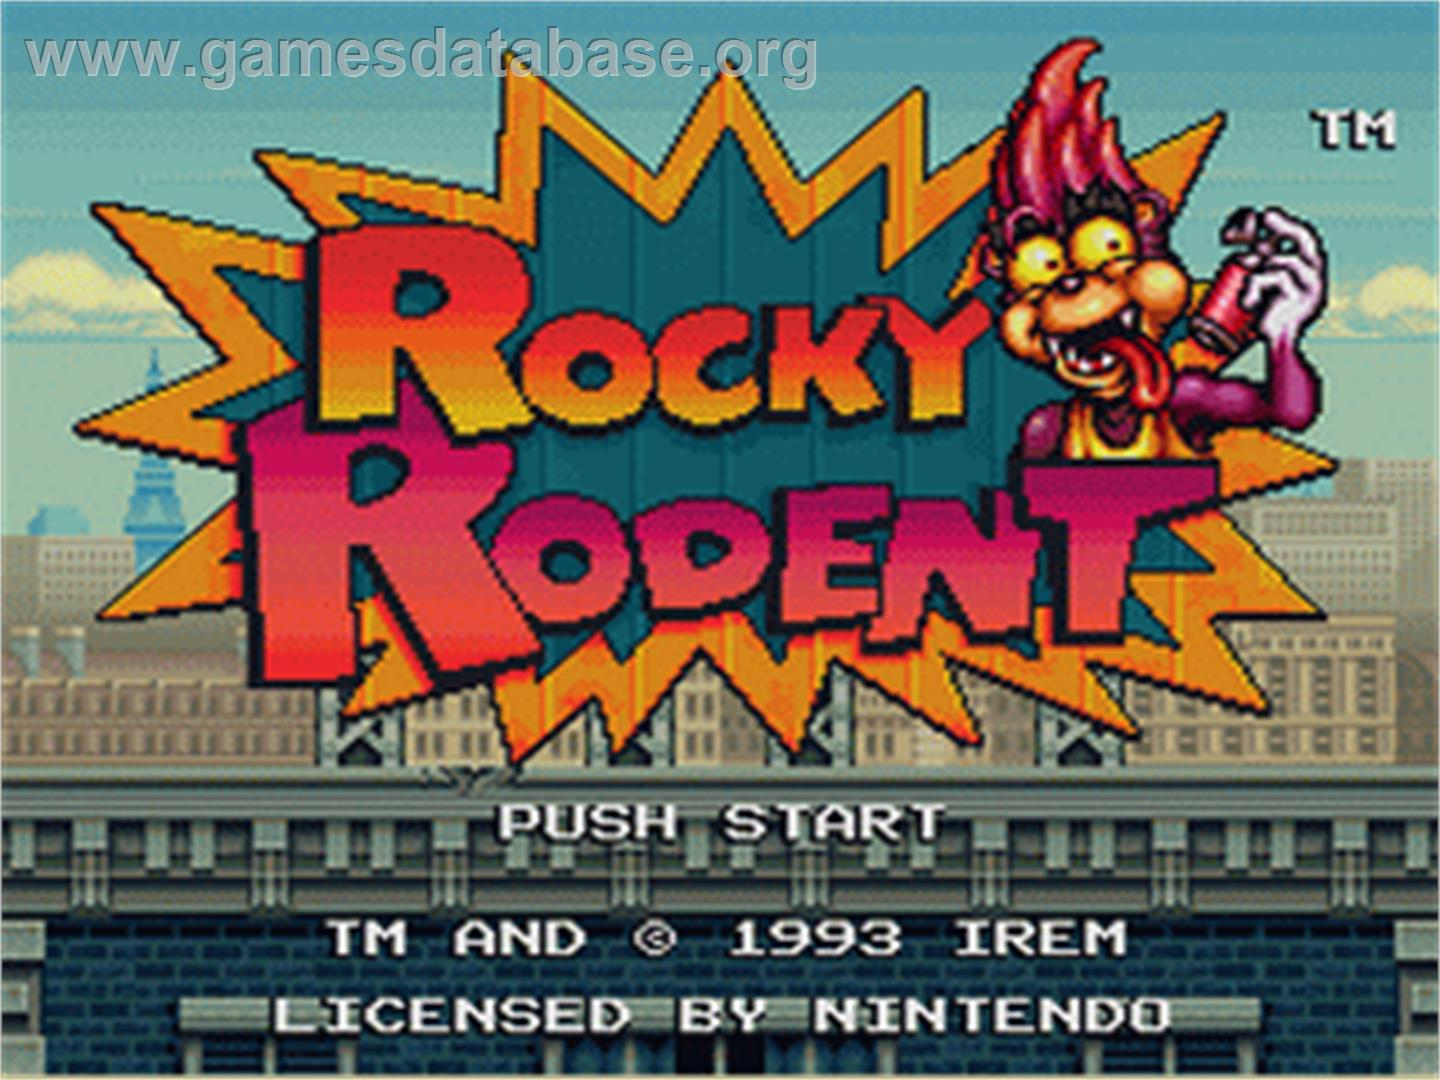 Rocky Rodent - Nintendo SNES - Artwork - Title Screen